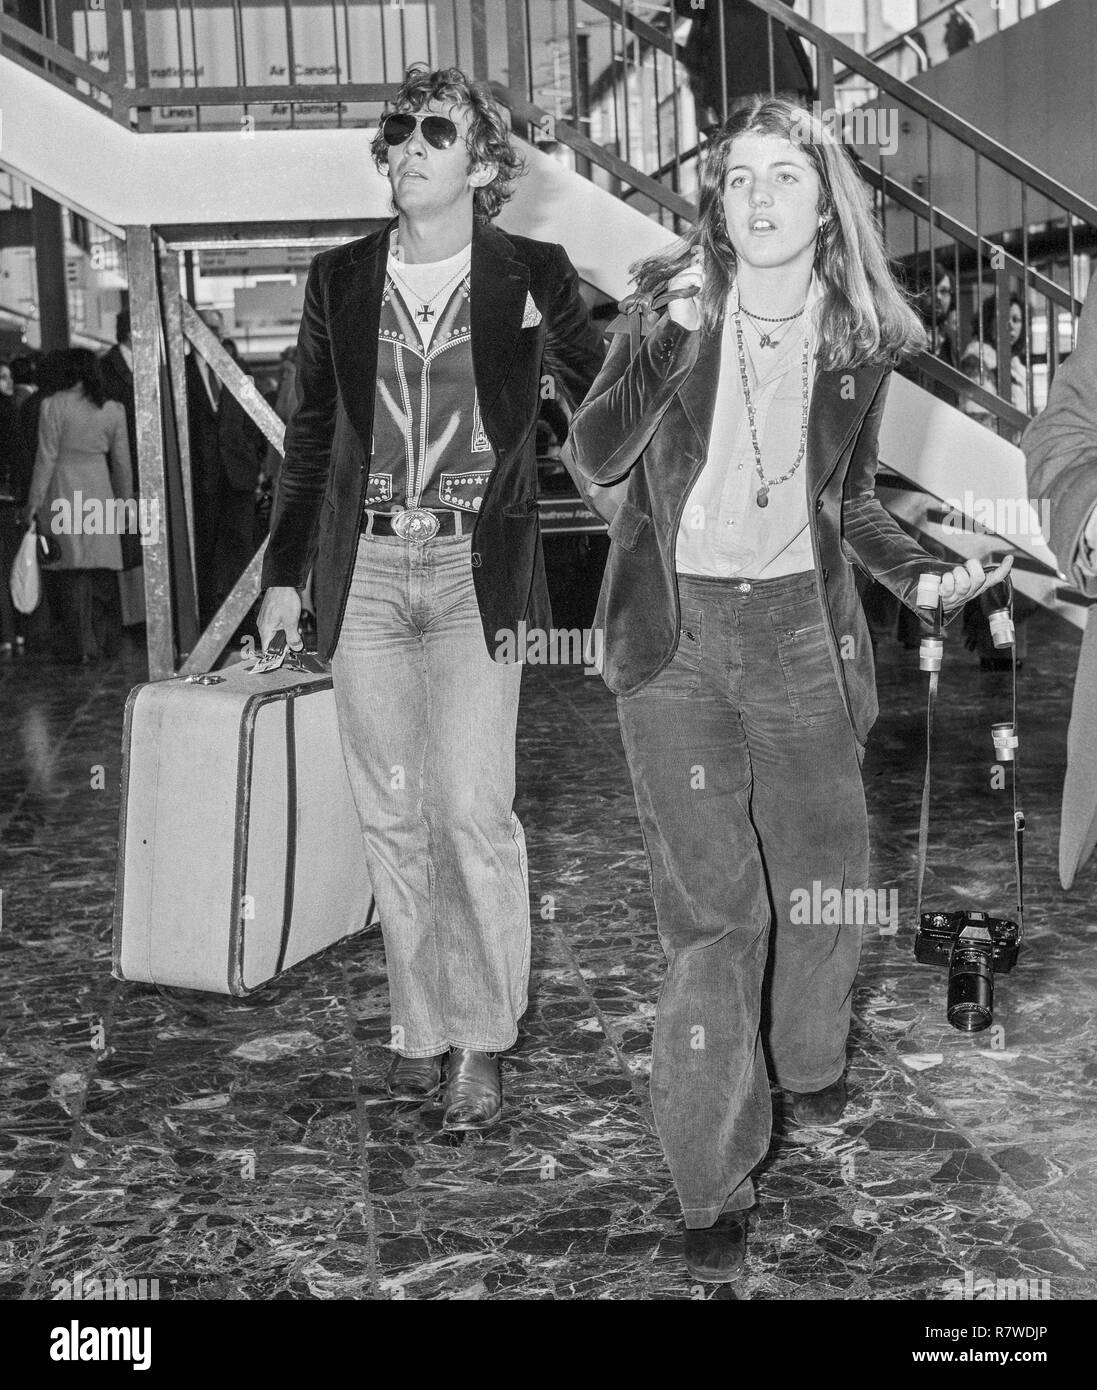 Caroline Kennedy and Mark Shand leaving Heathrow Airport in London in 1976 - Stock Image